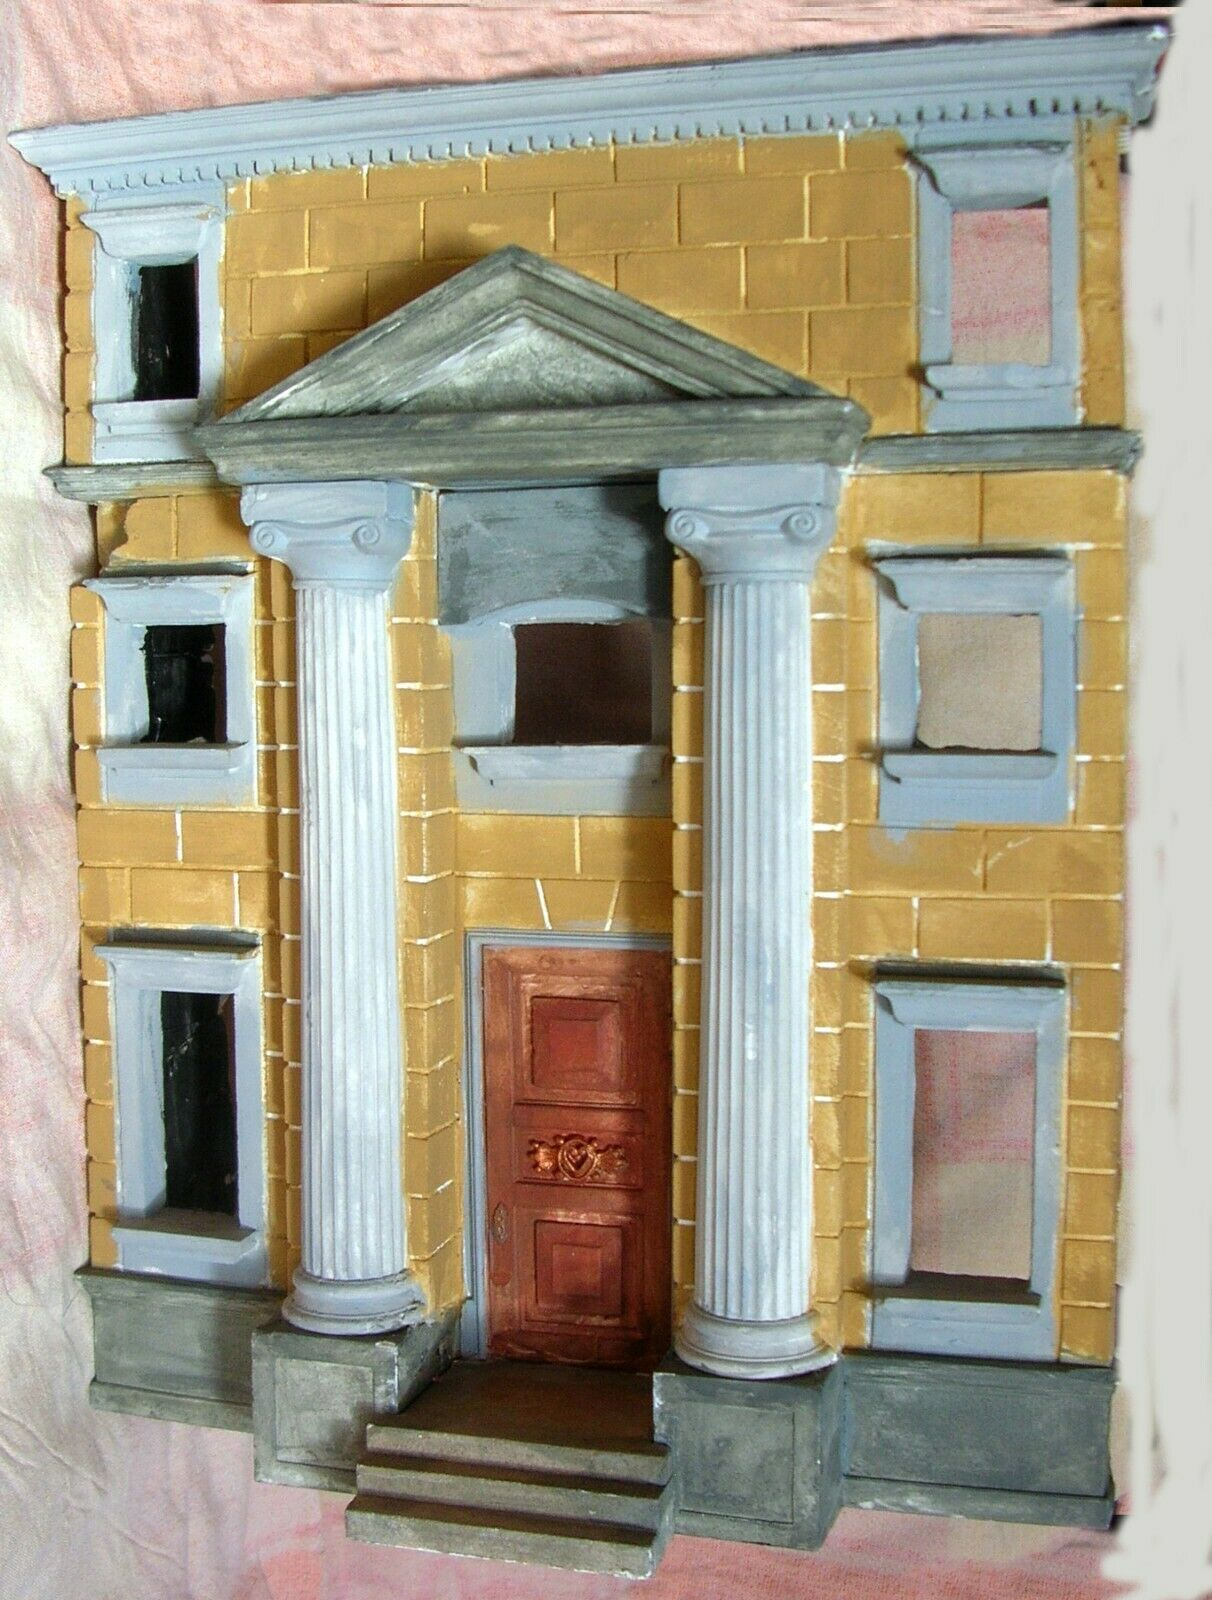 Play-Facade Palace - 1 35 scale